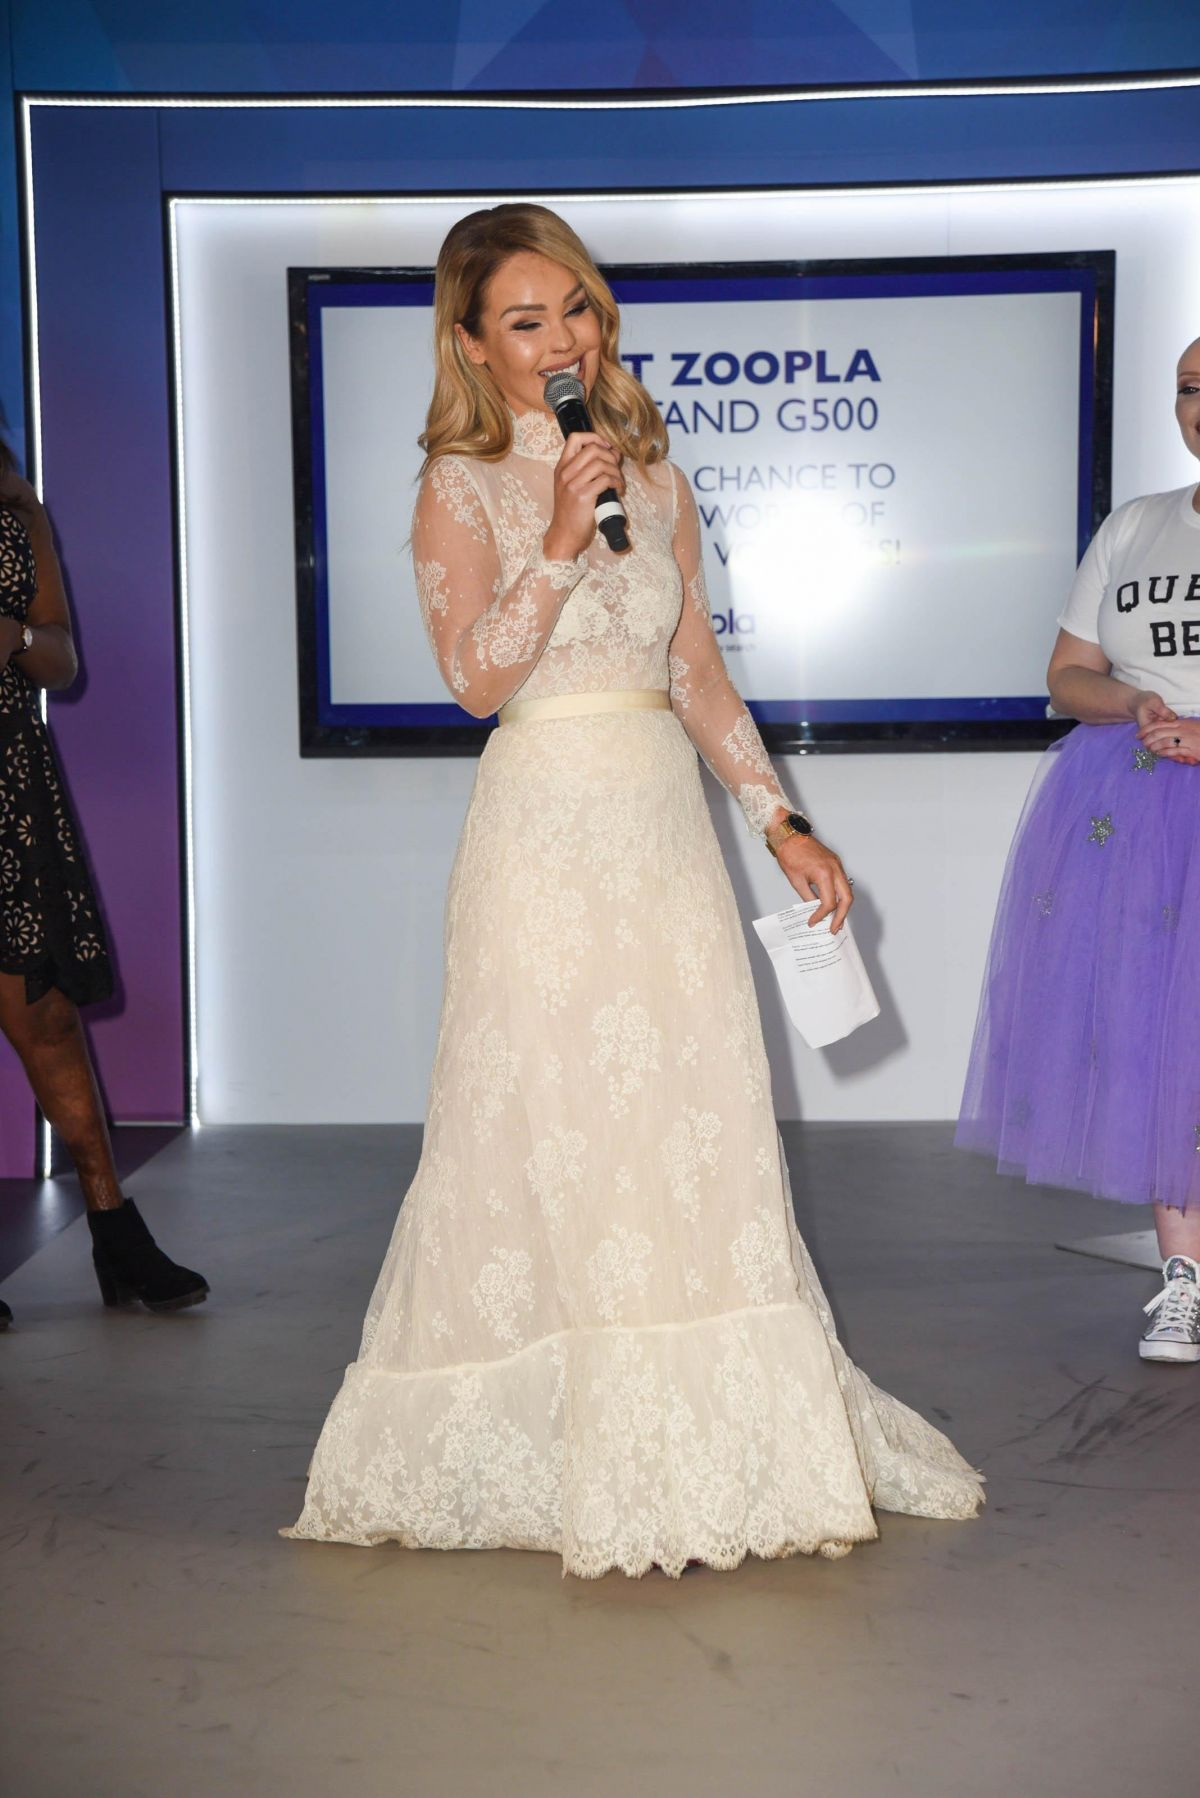 KATIE PIPER at Ideal Home Show Fashion Event in London 03/24/2017